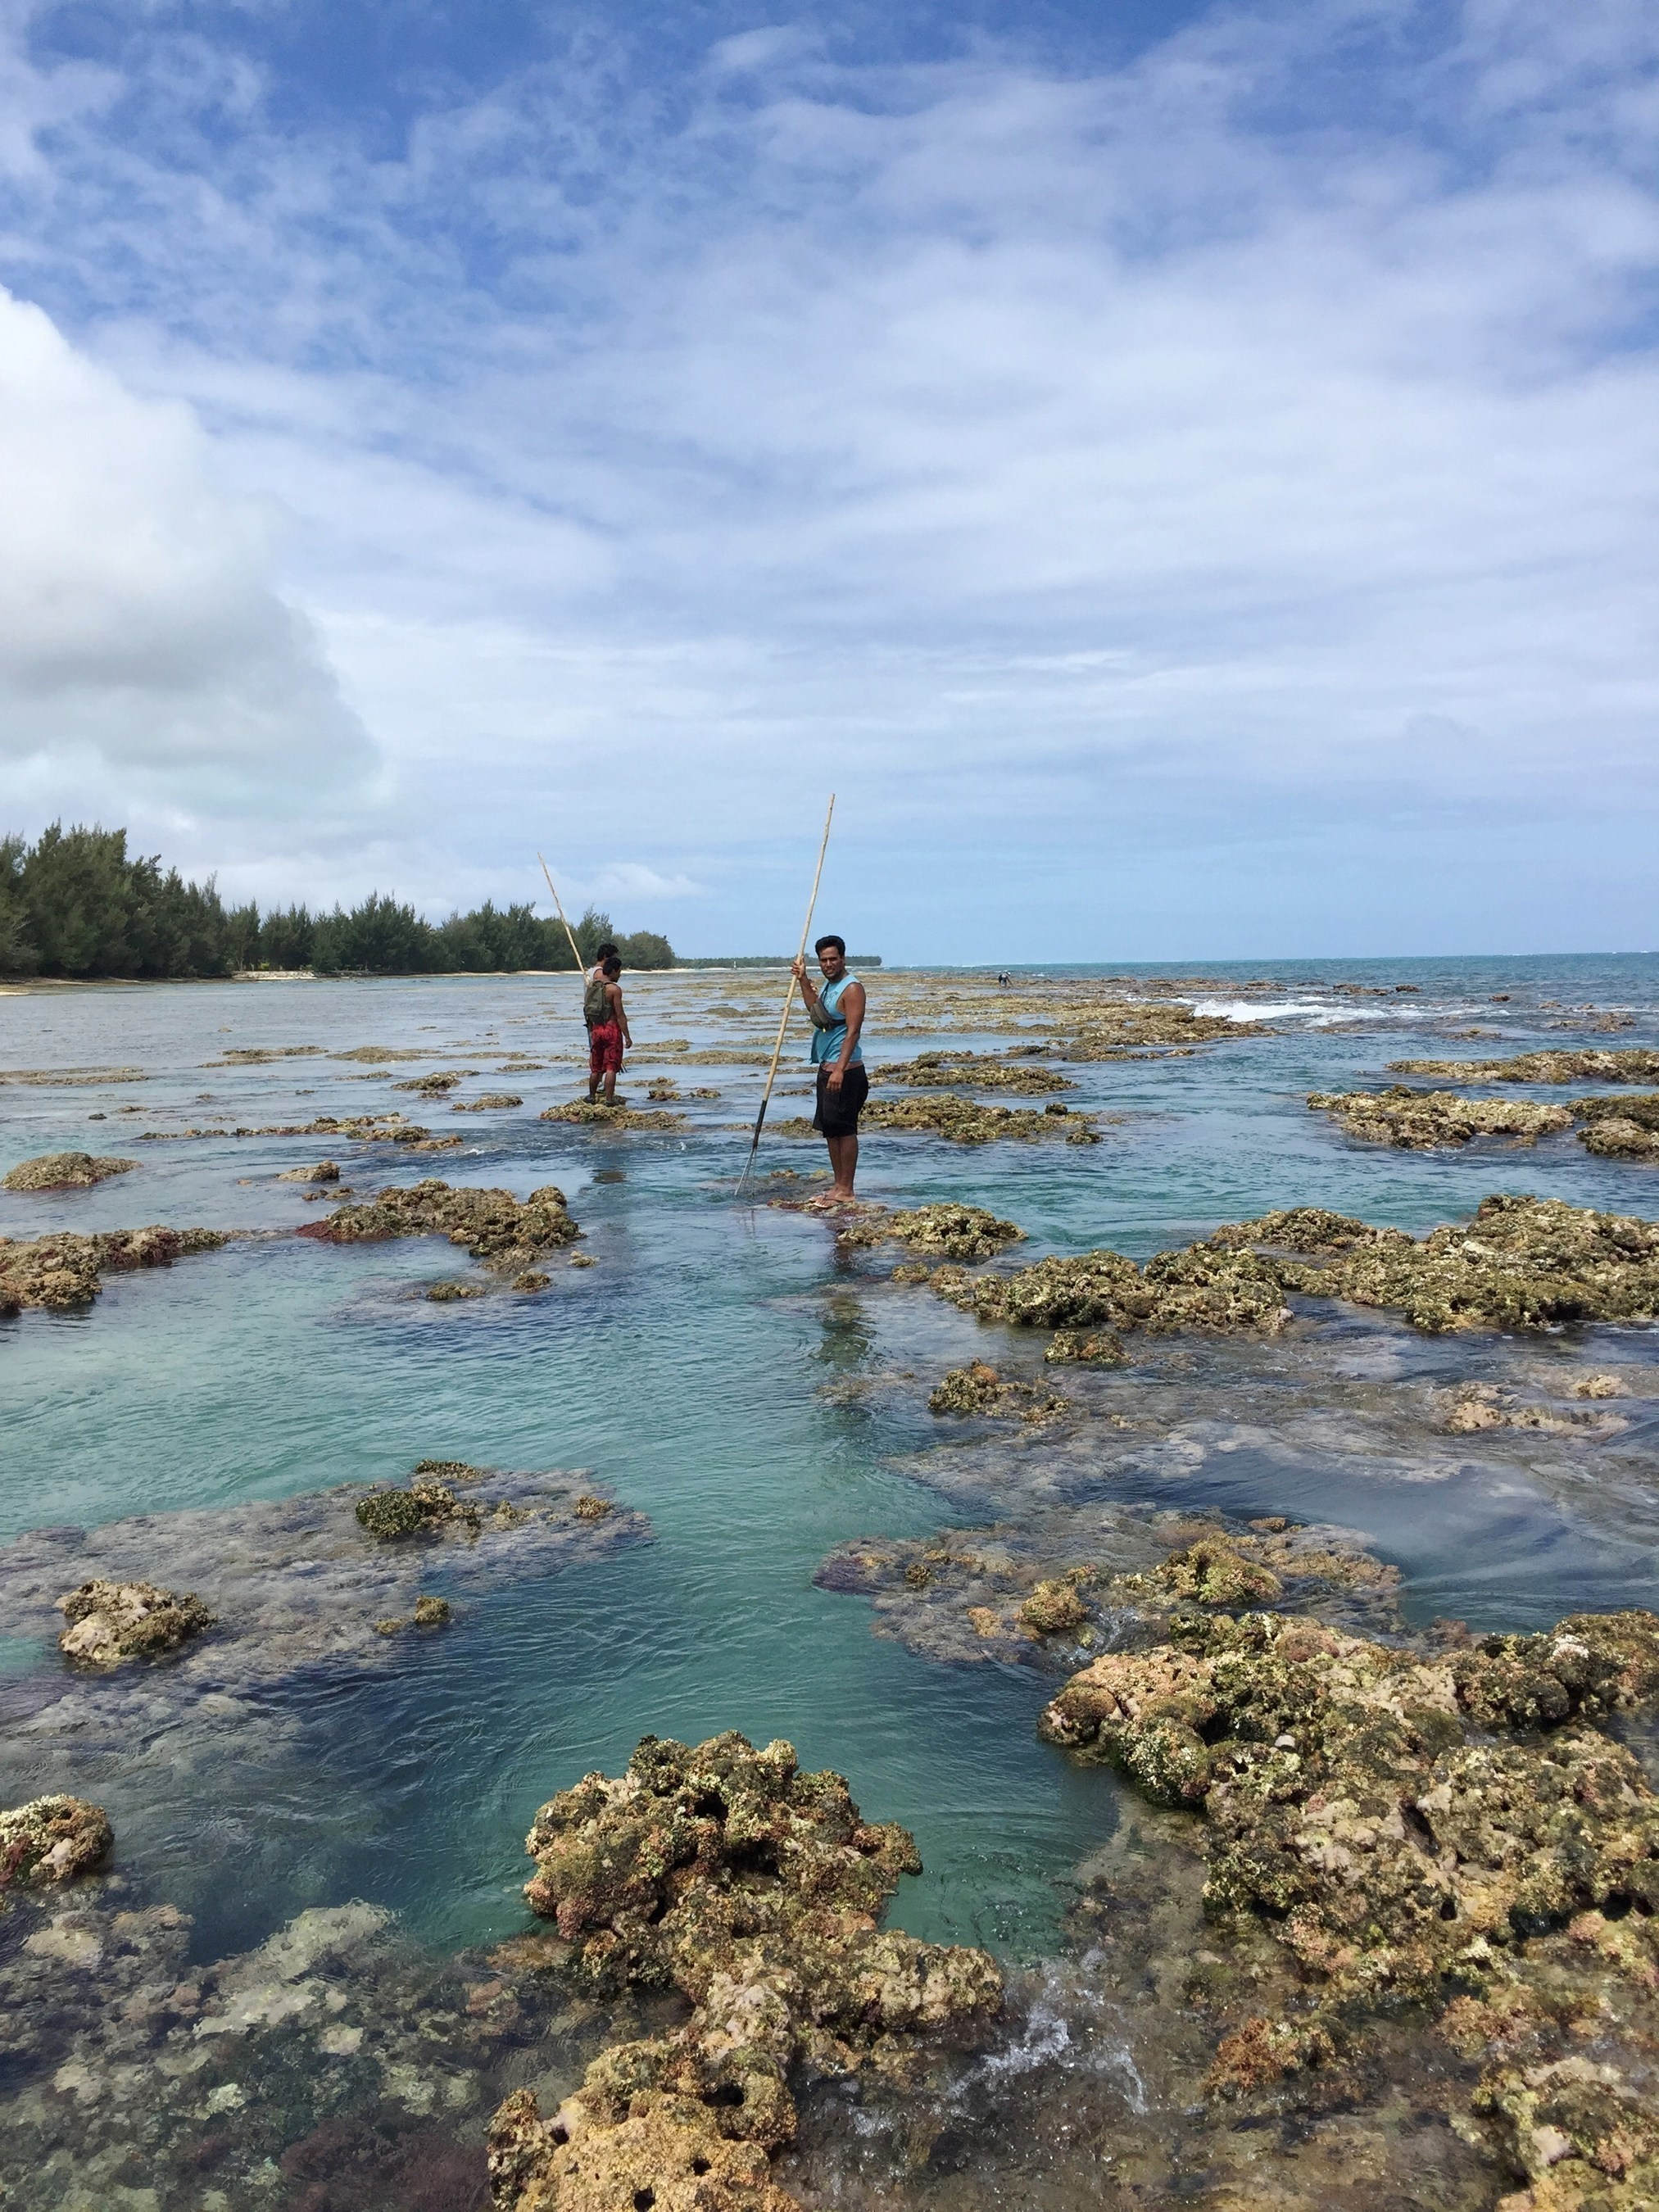 In the Austral Islands, more than 1,500 fishermen work in lagoons and coastal waters.